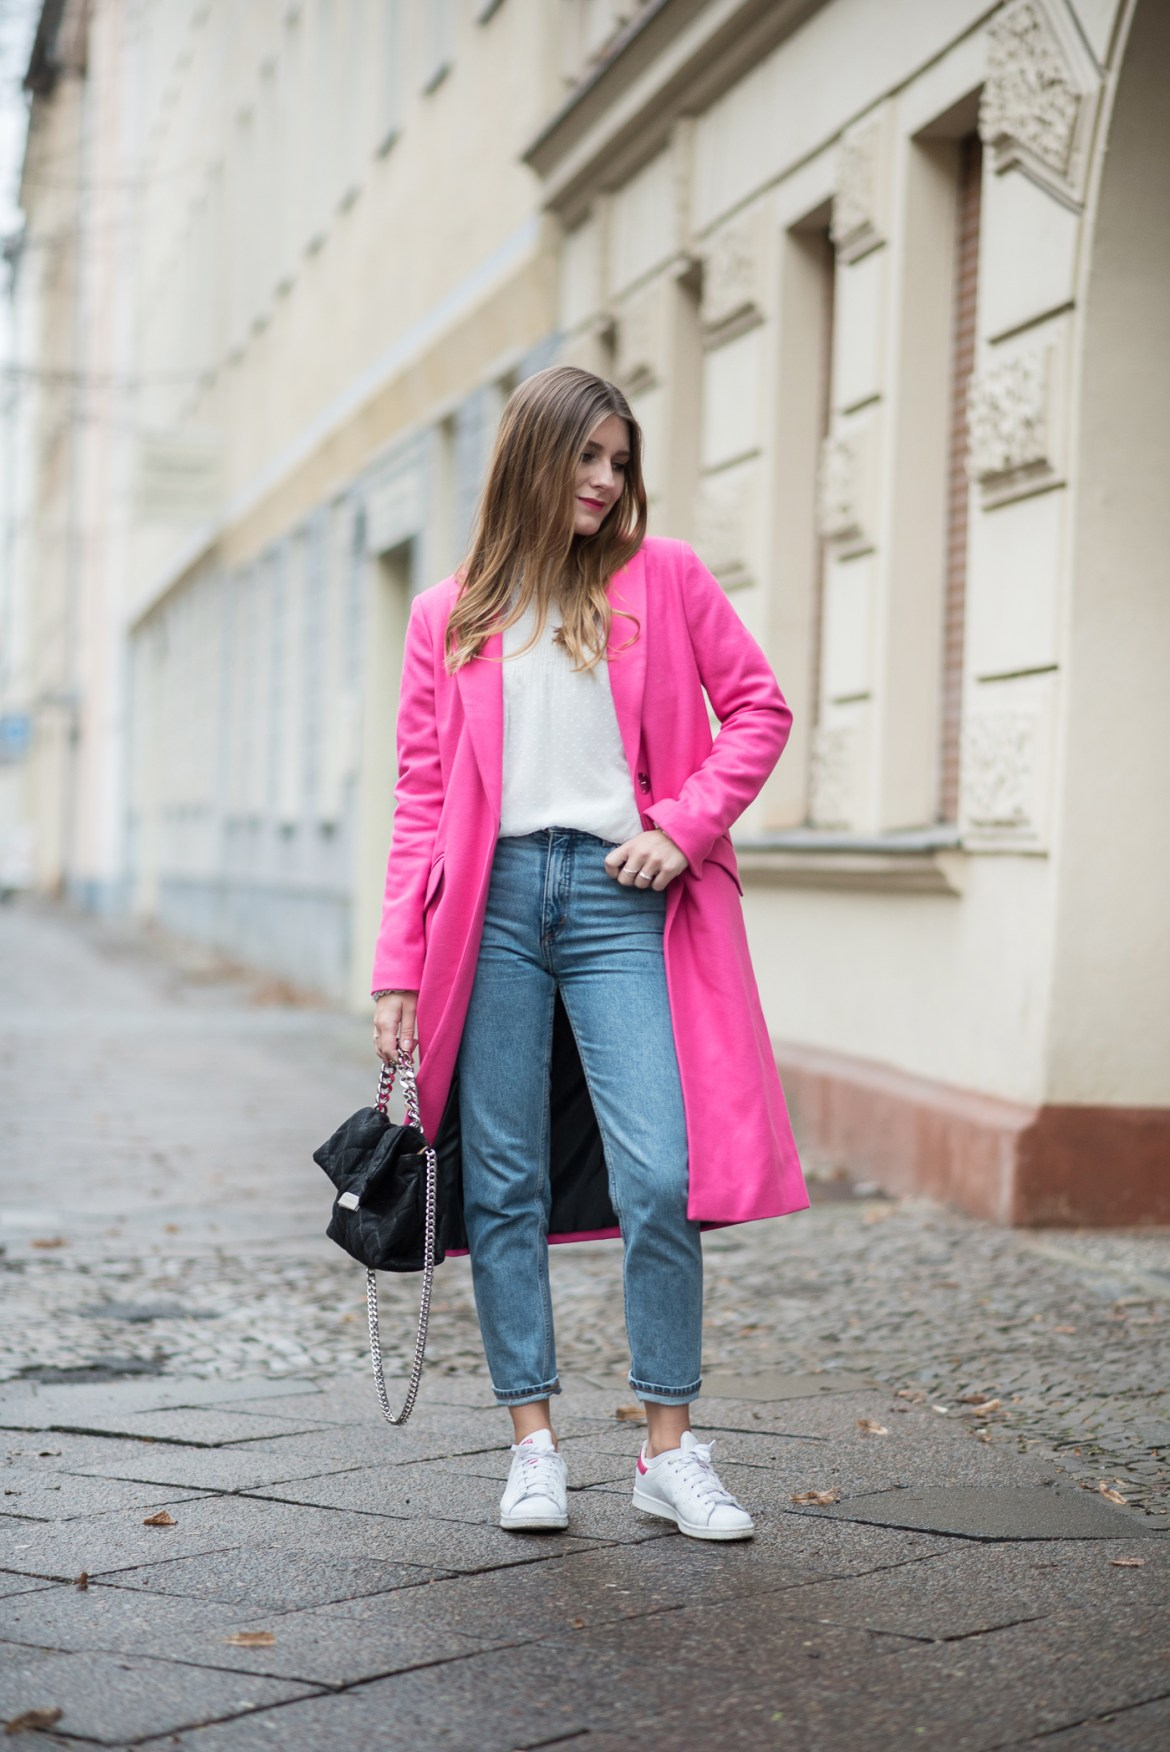 on_monday_wear_pink_topshop_coat_6